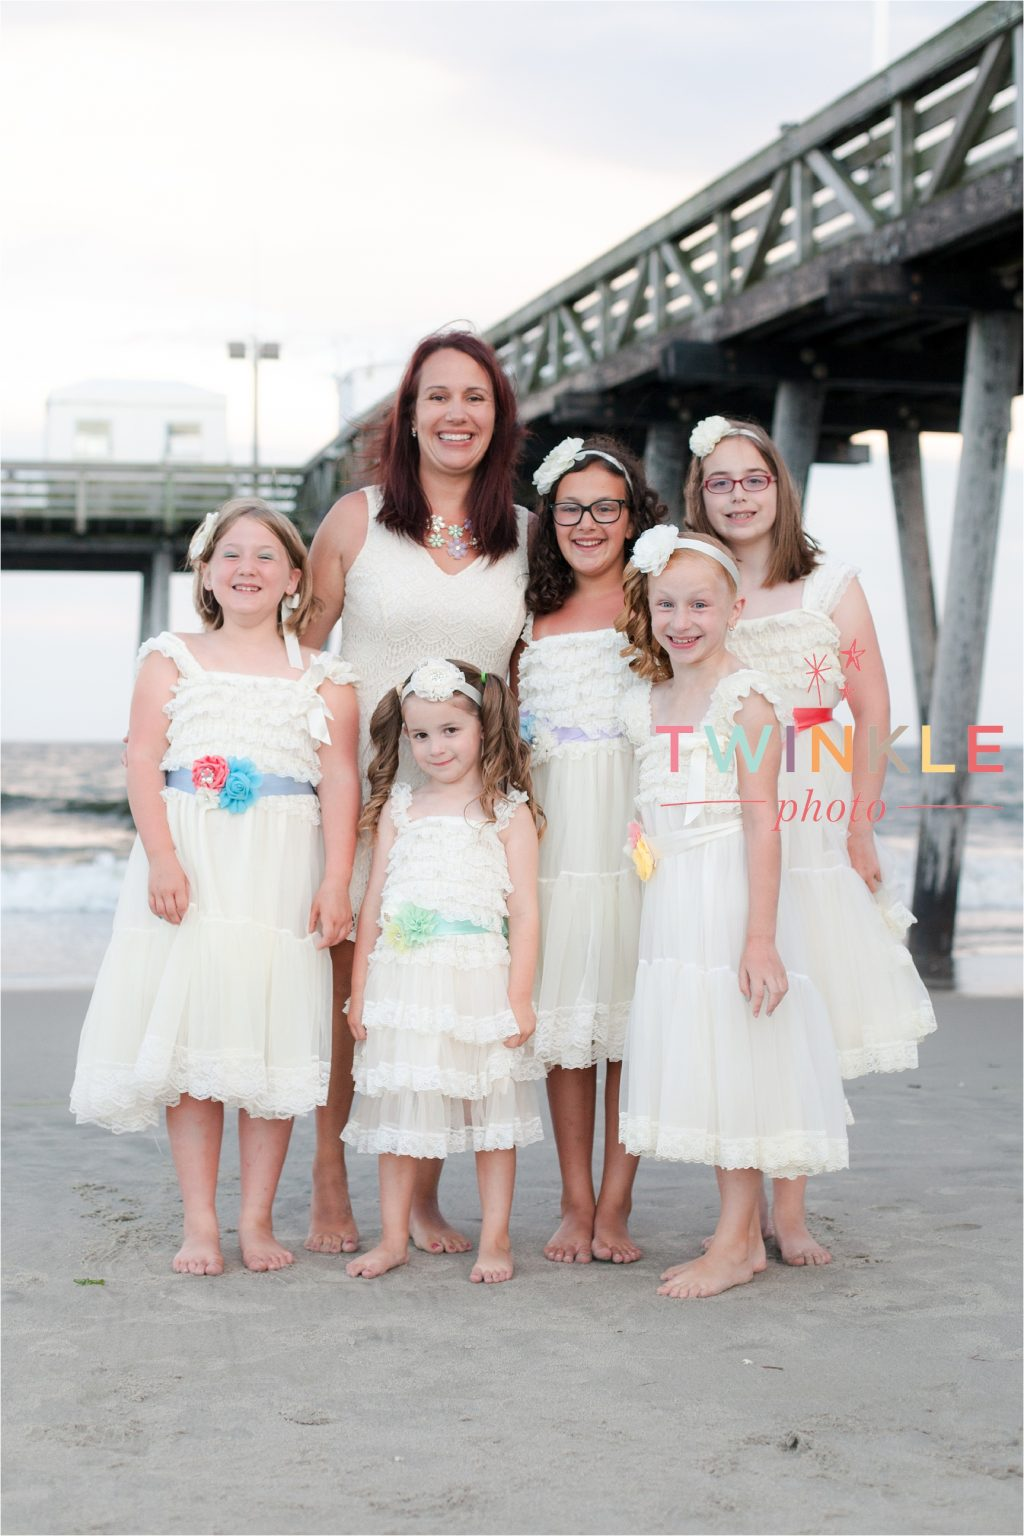 OCNJ Ocean City NJ New Jersey Beach Family Photography Photographer Twinkle Photo-21